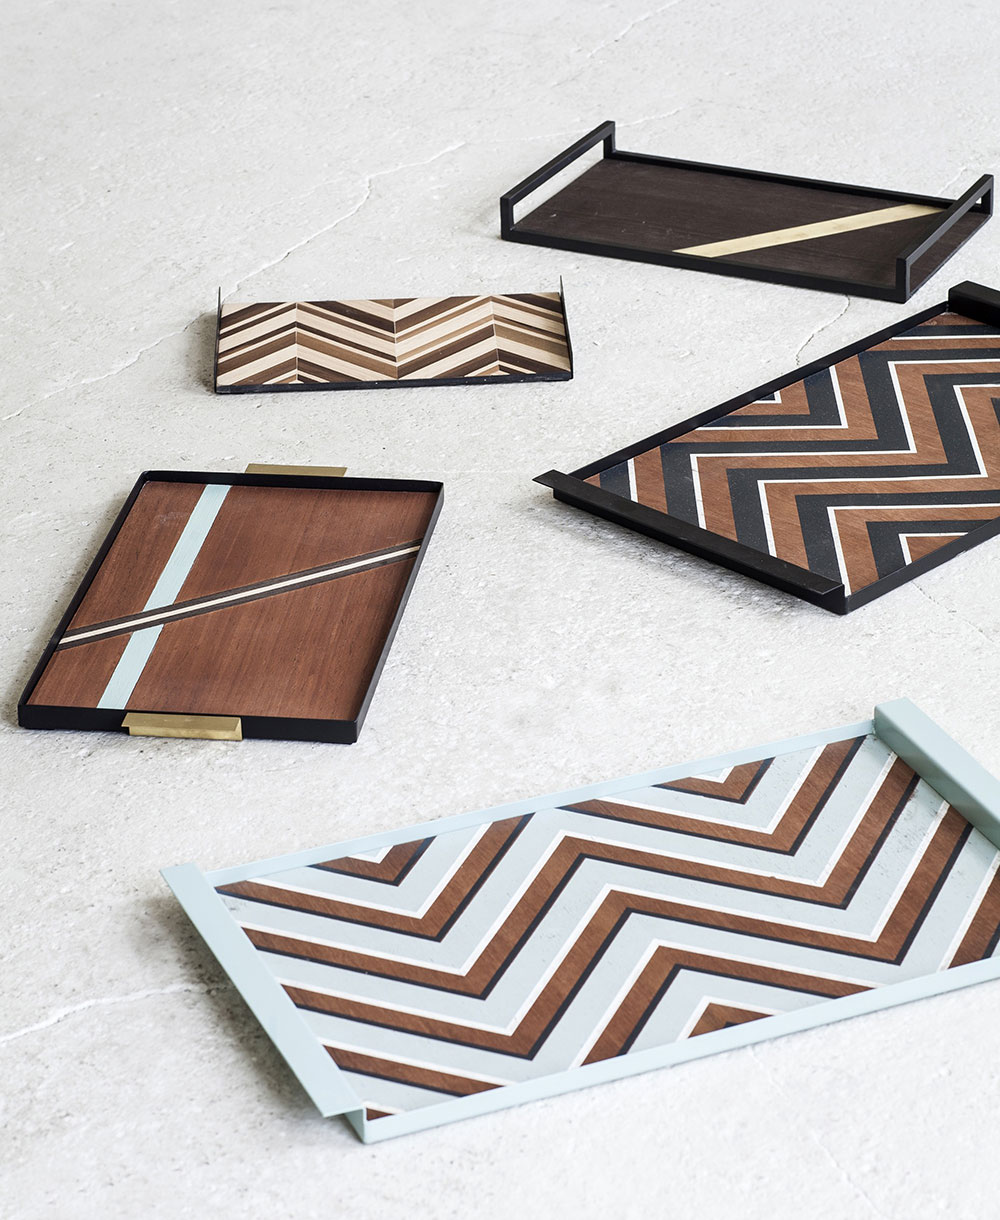 Trays by Michiel Goethals and Mattias Van Mieghem for SERAX.